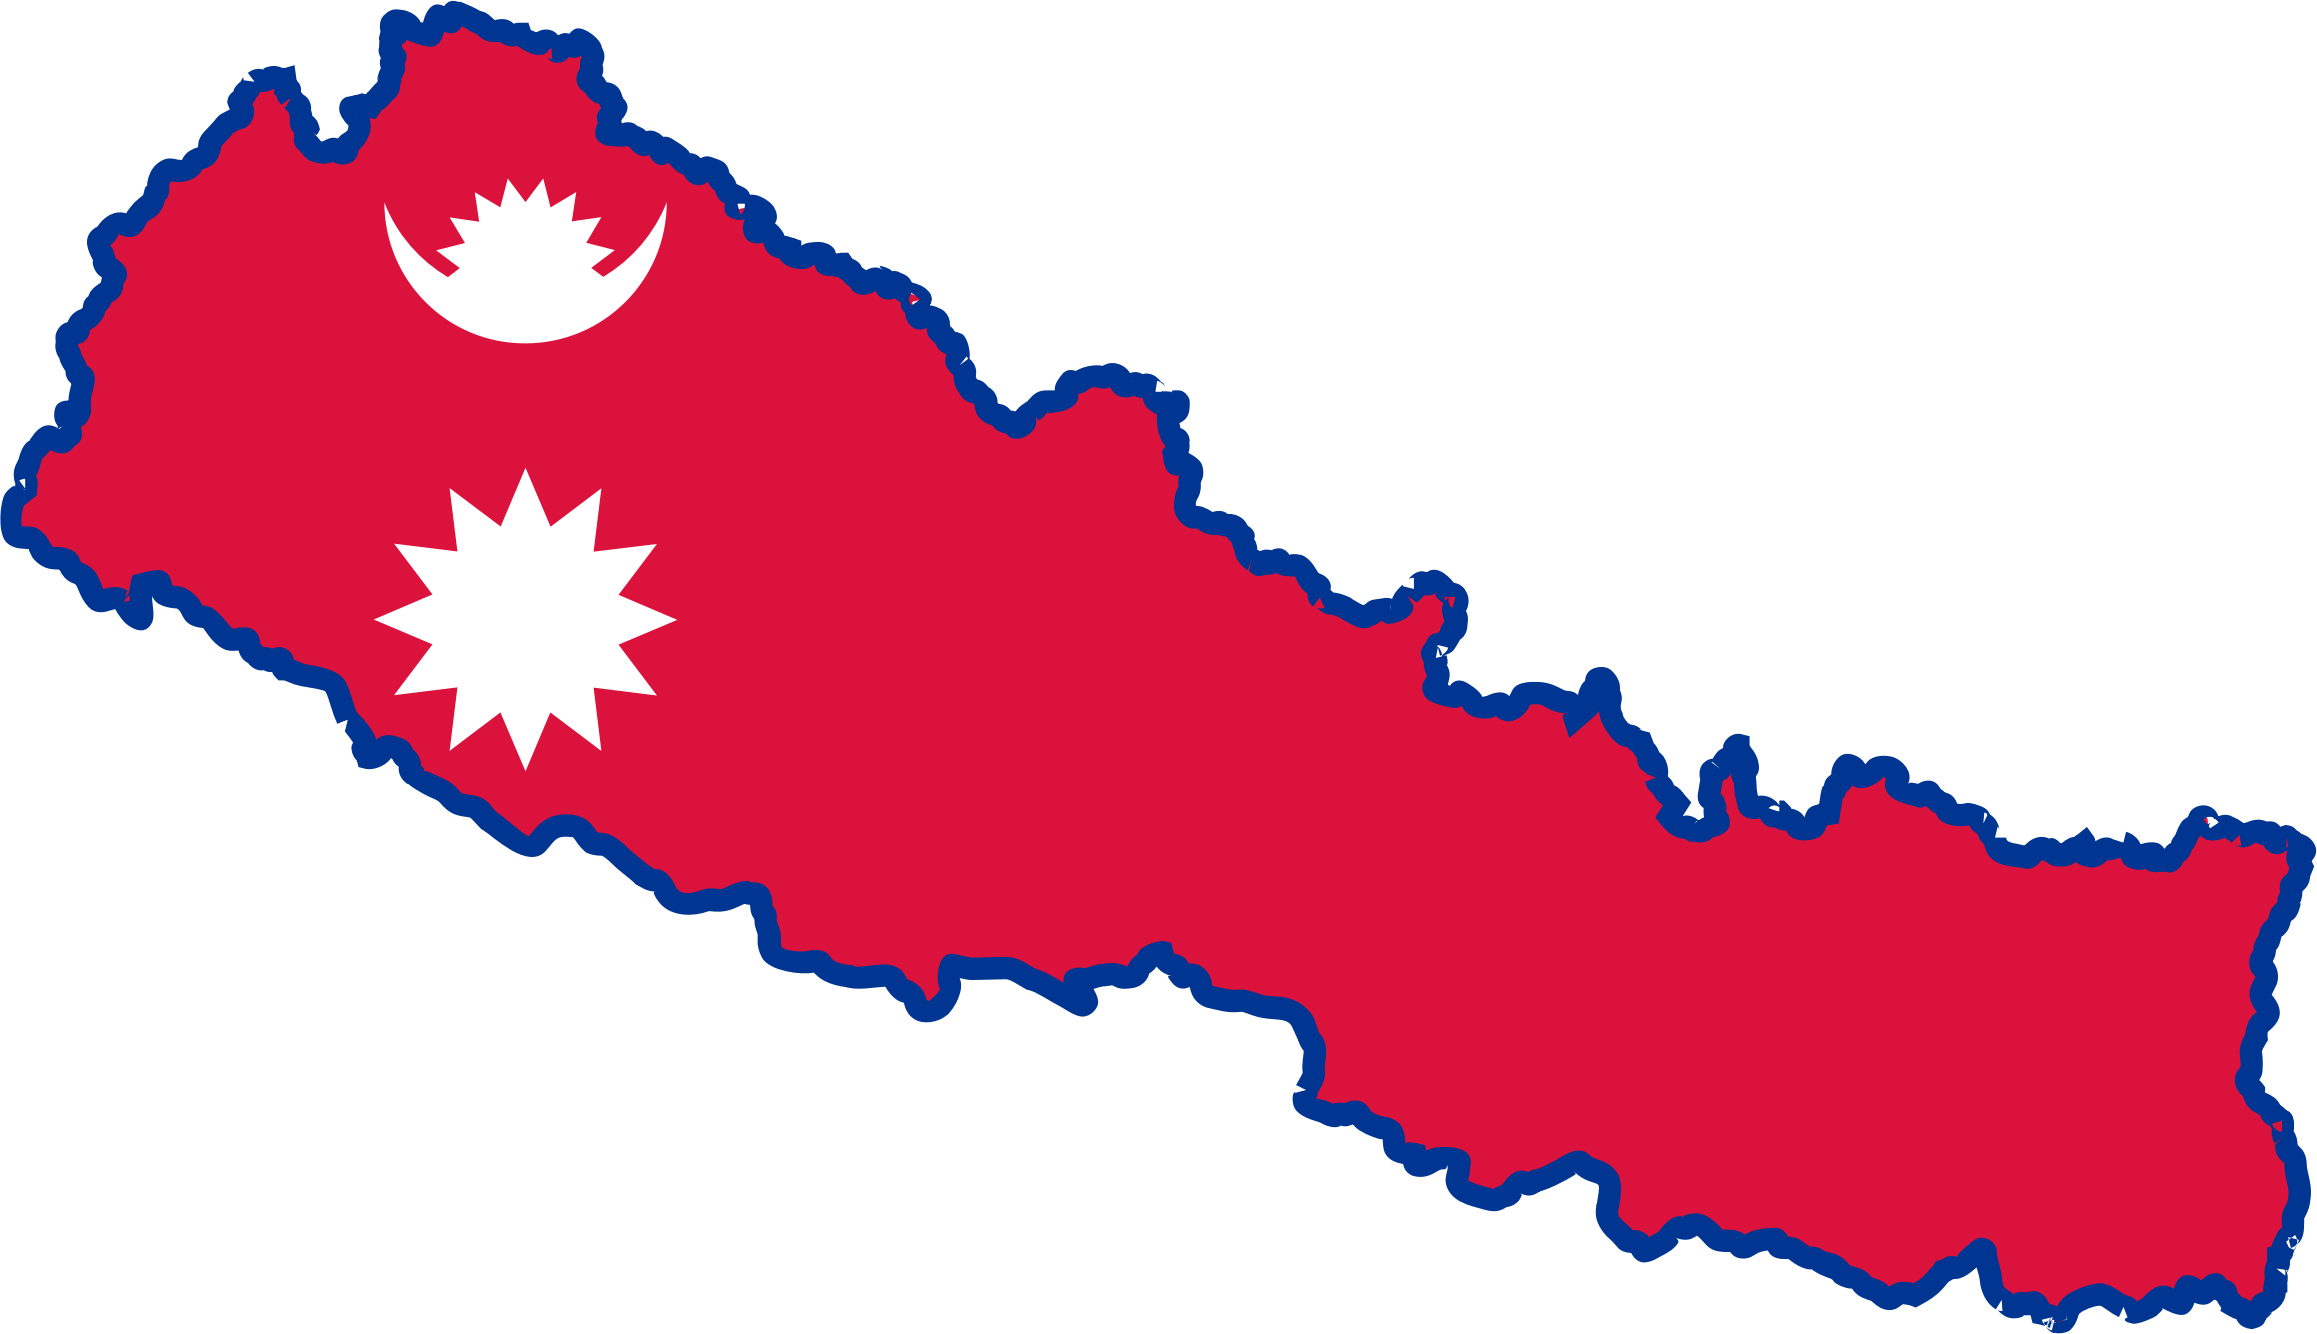 Clipart Nepal Map Flag - Nepal map